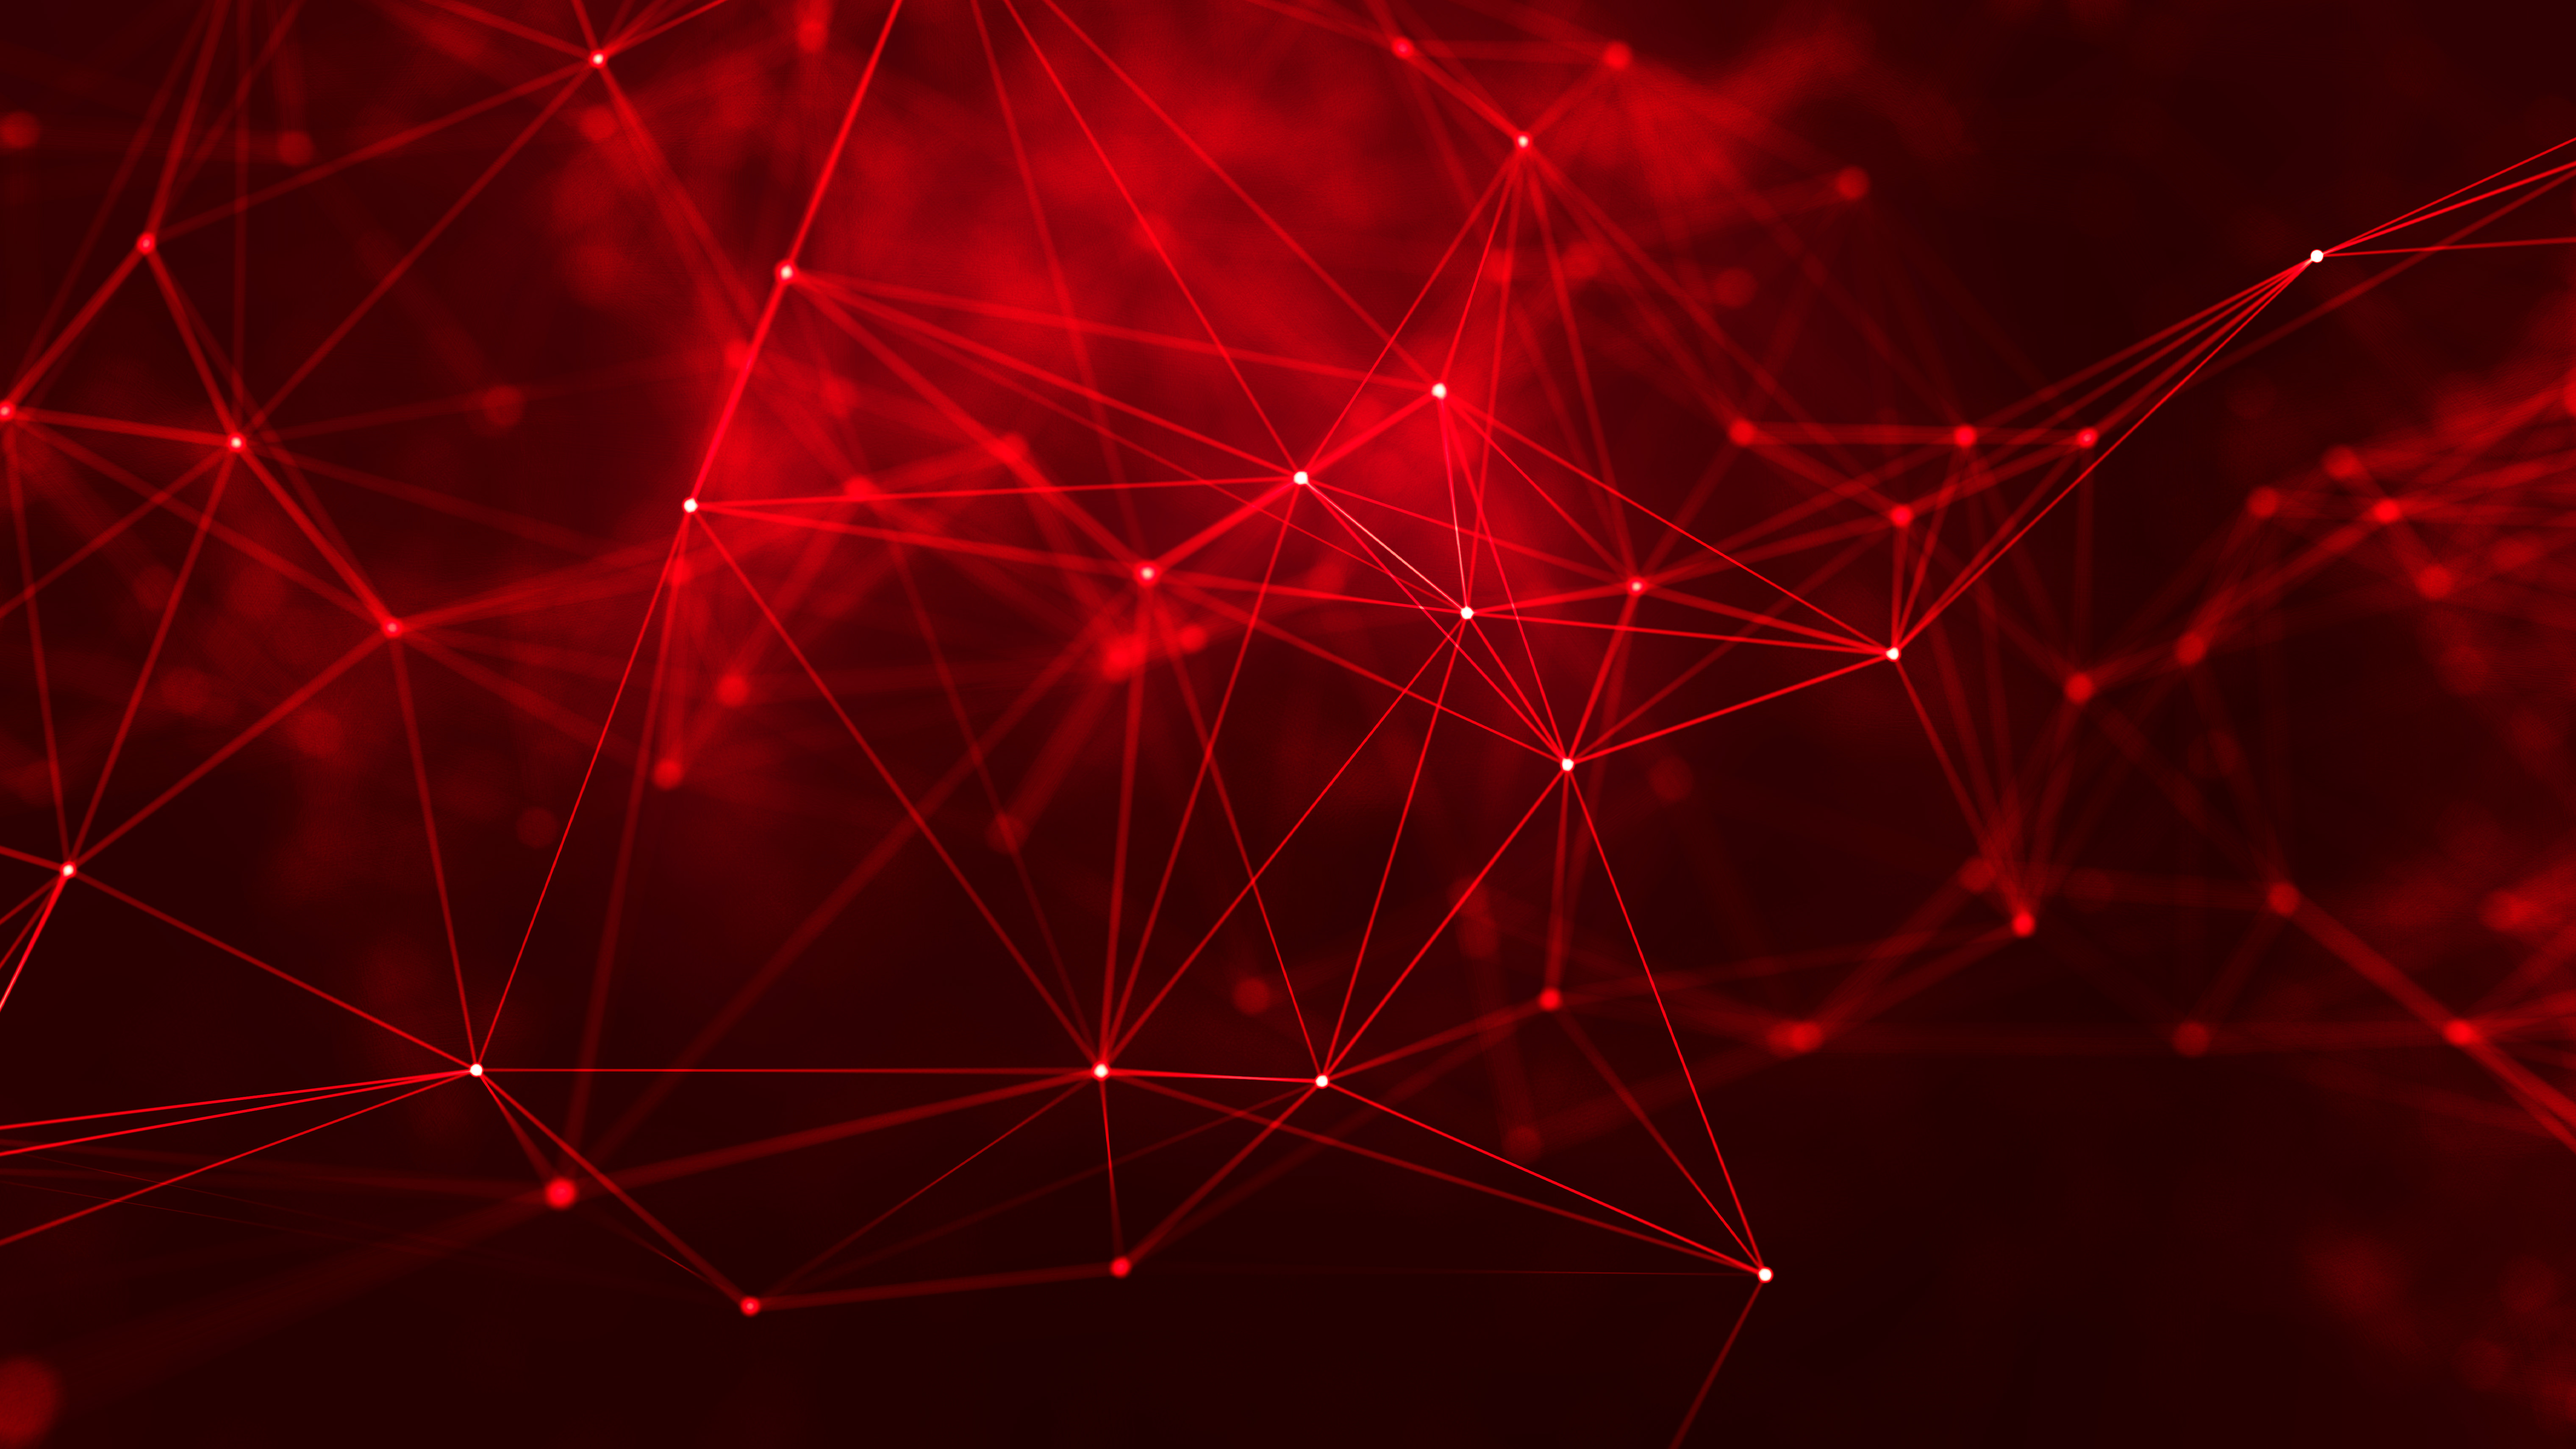 Geometry Cyberspace Abstract 5k Hd Abstract 4k Wallpapers